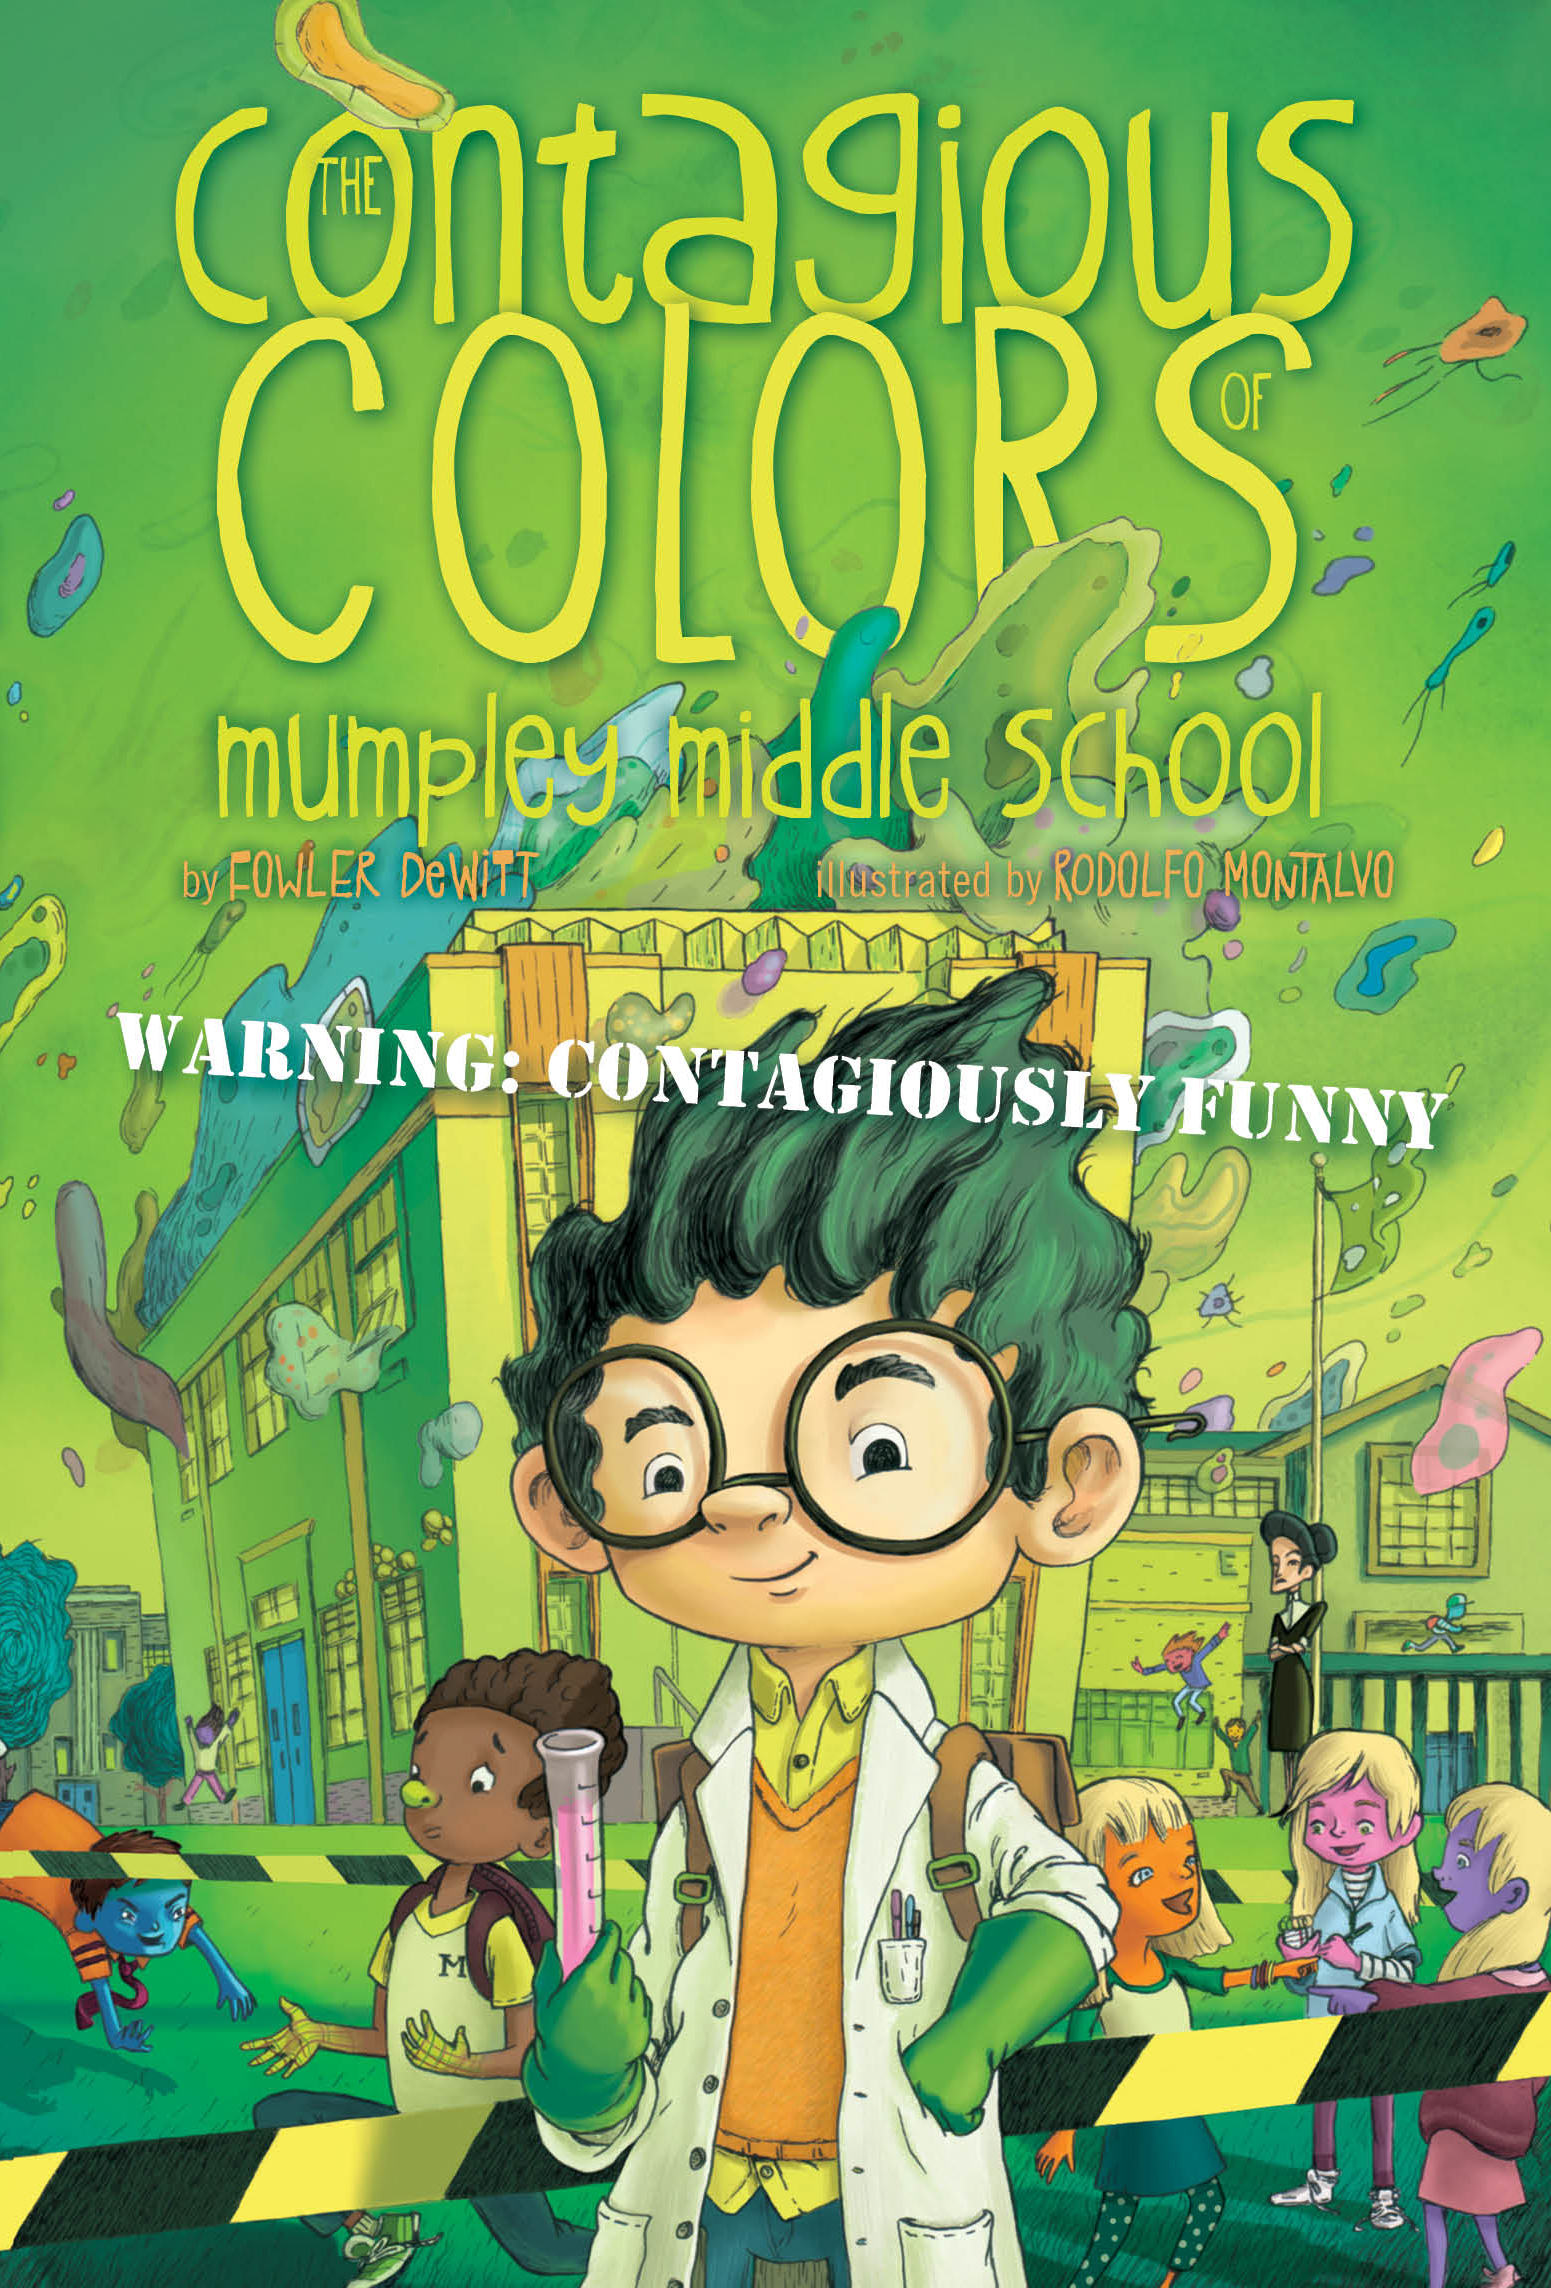 Middle School Book Cover : The contagious colors of mumpley middle school book by